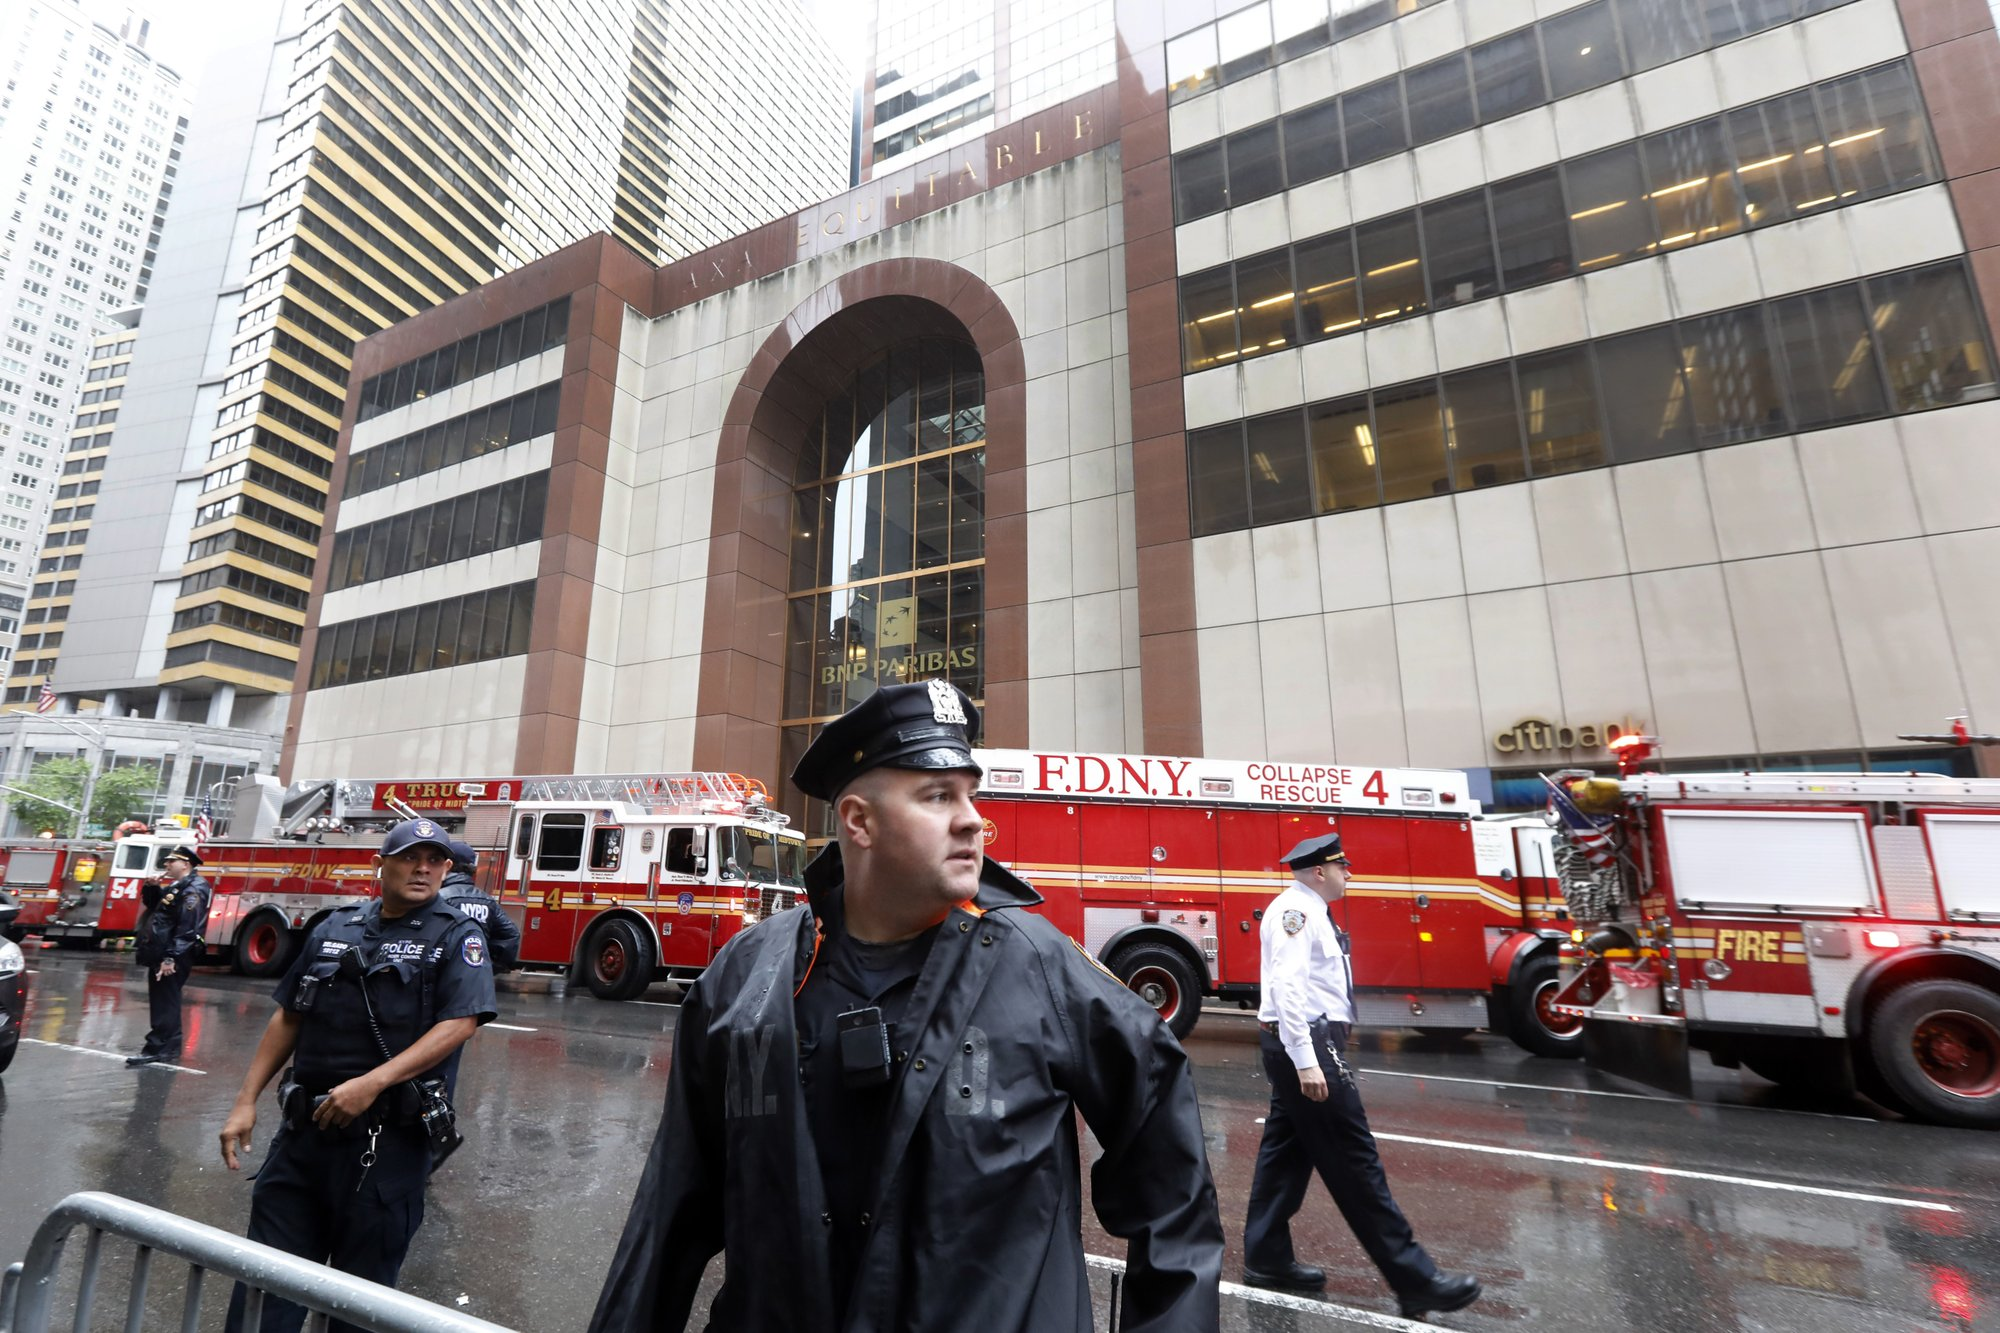 Helicopter crashes on roof of NYC skyscraper, killing pilot